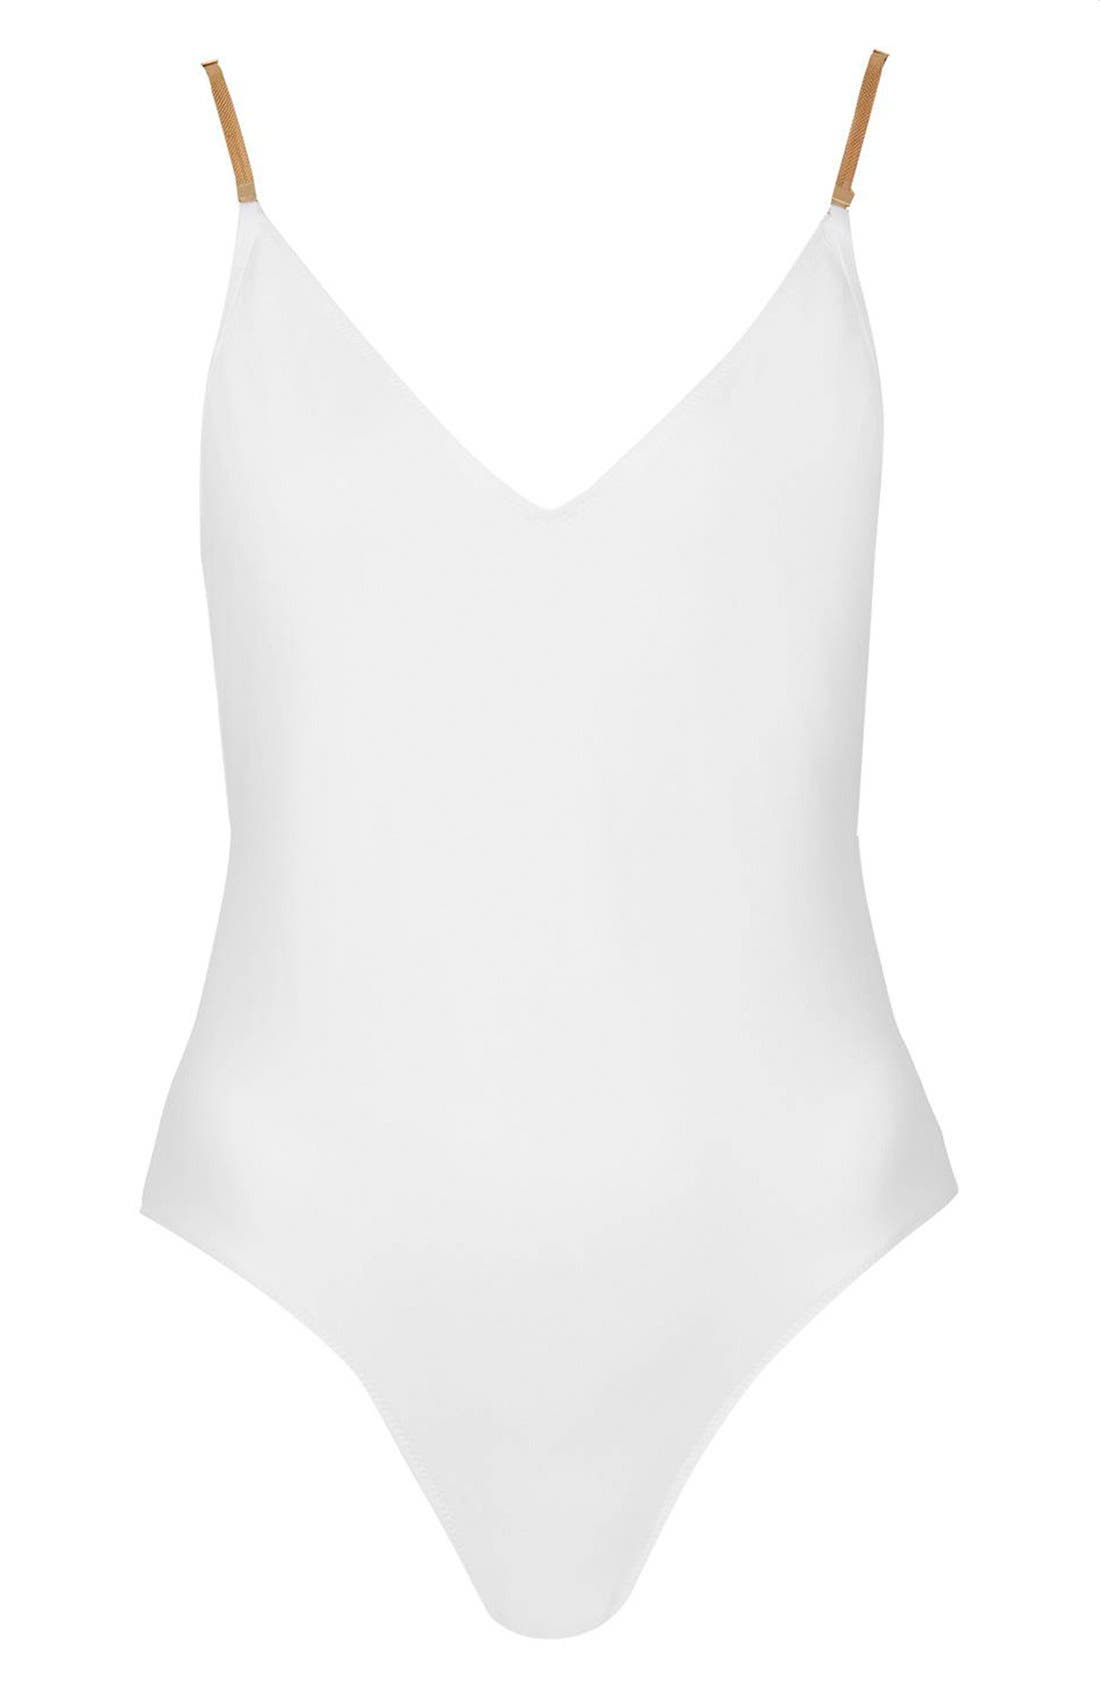 Alternate Image 3  - Topshop Chain Shoulders One-Piece Swimsuit